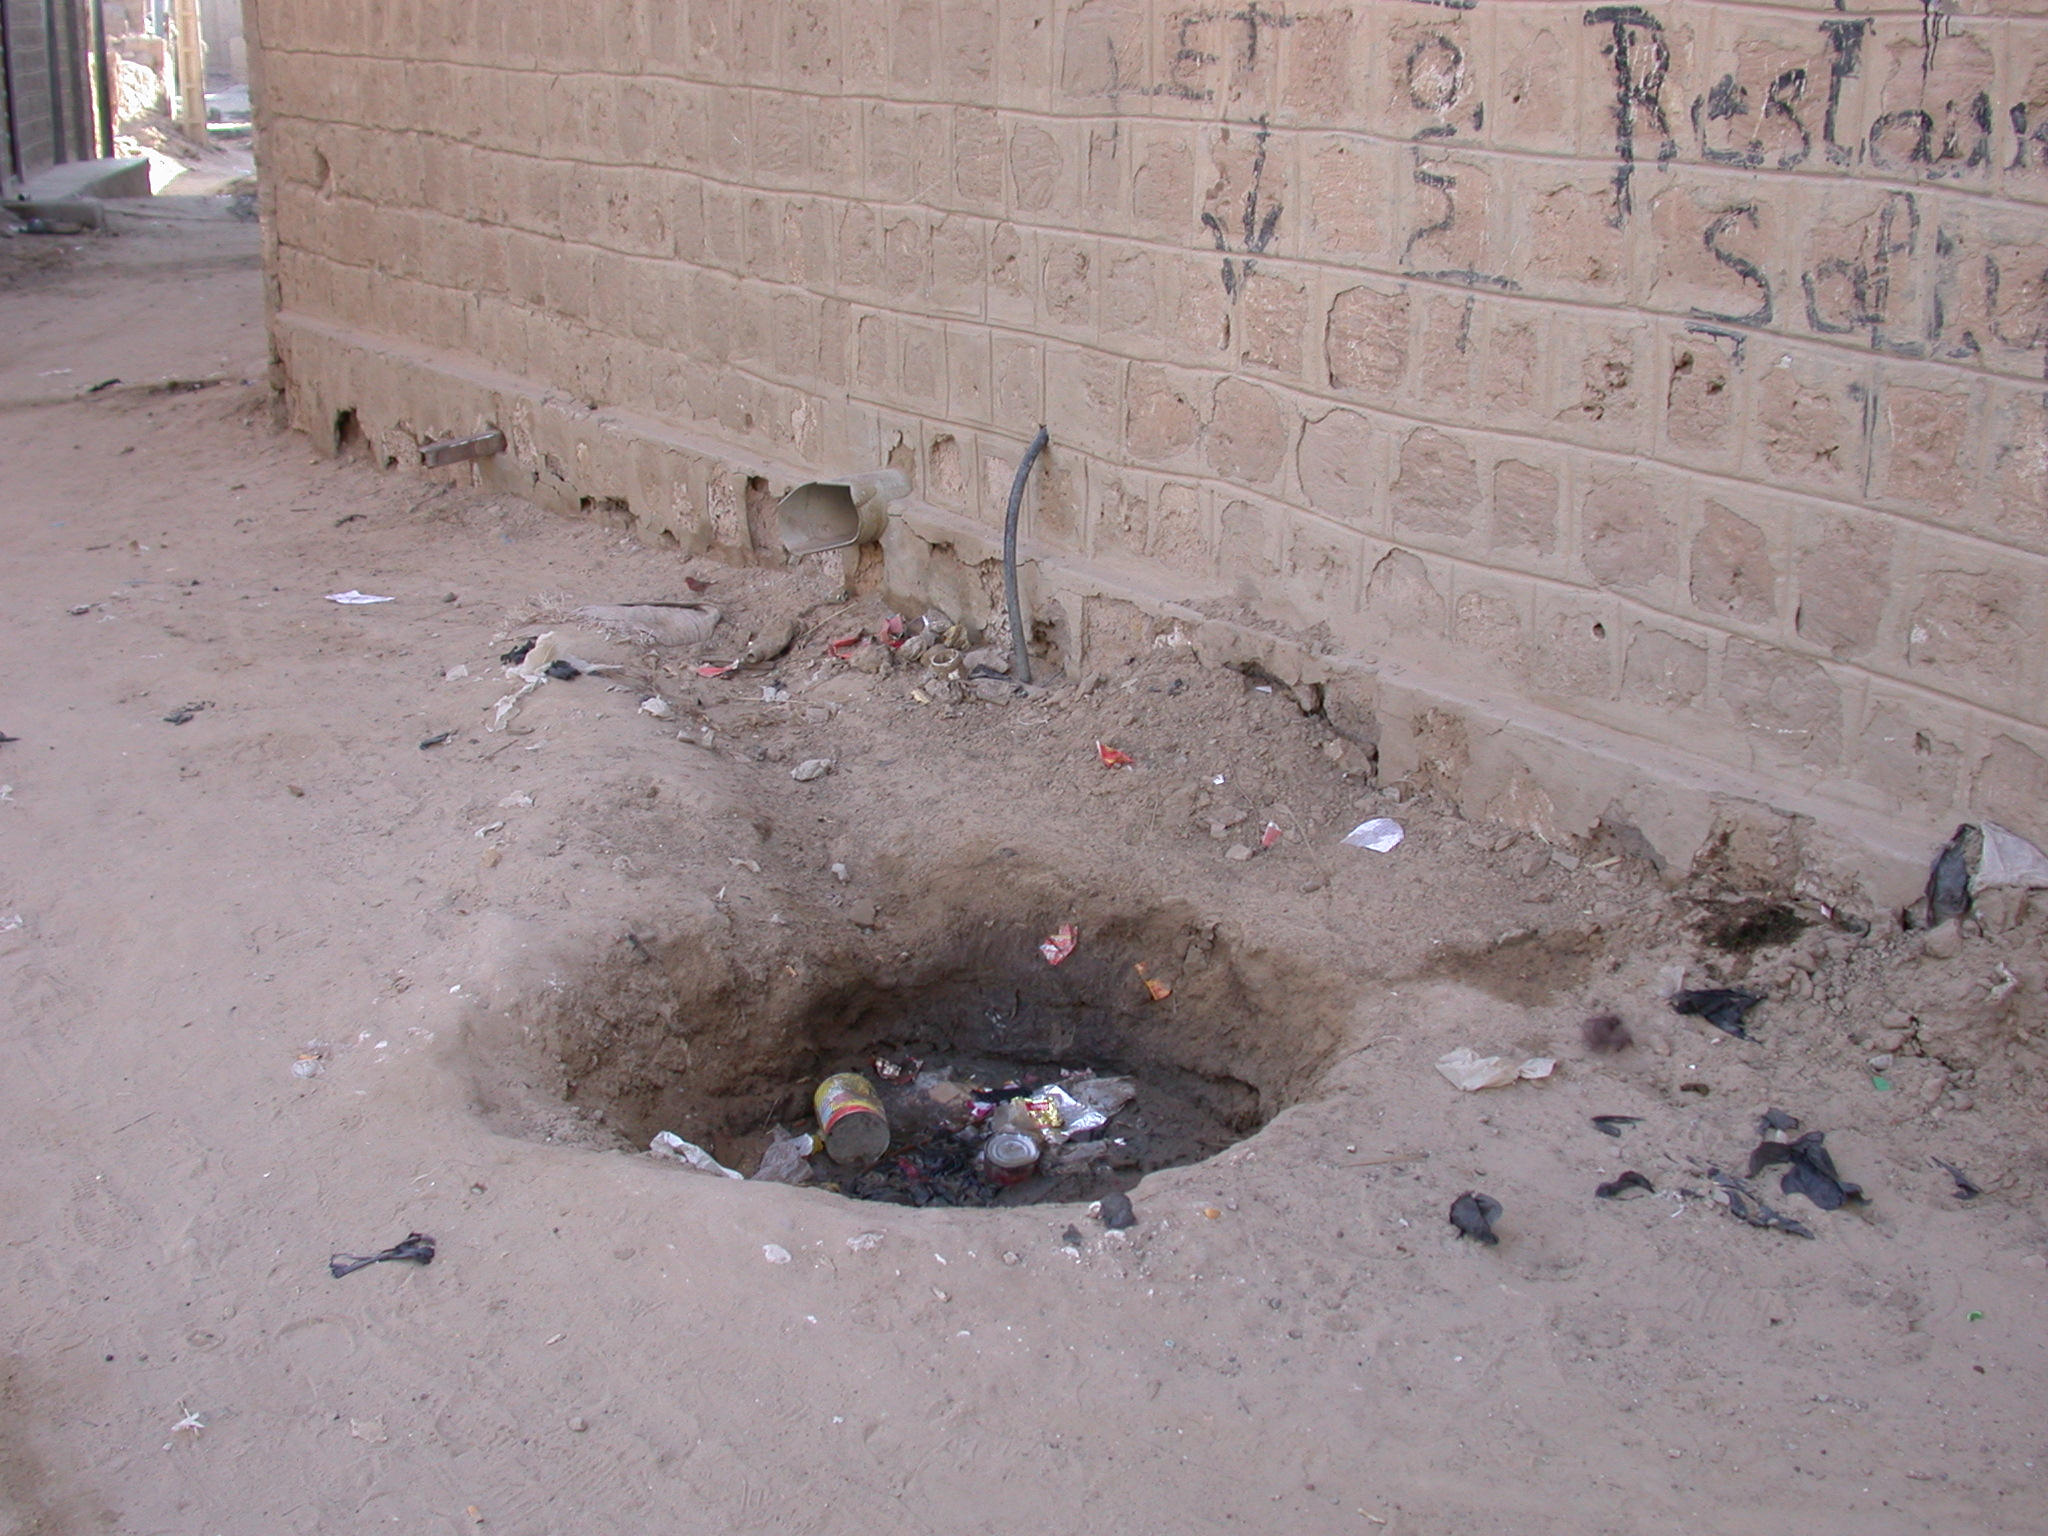 Open Sewer in Dirt Road, Timbuktu, Mali